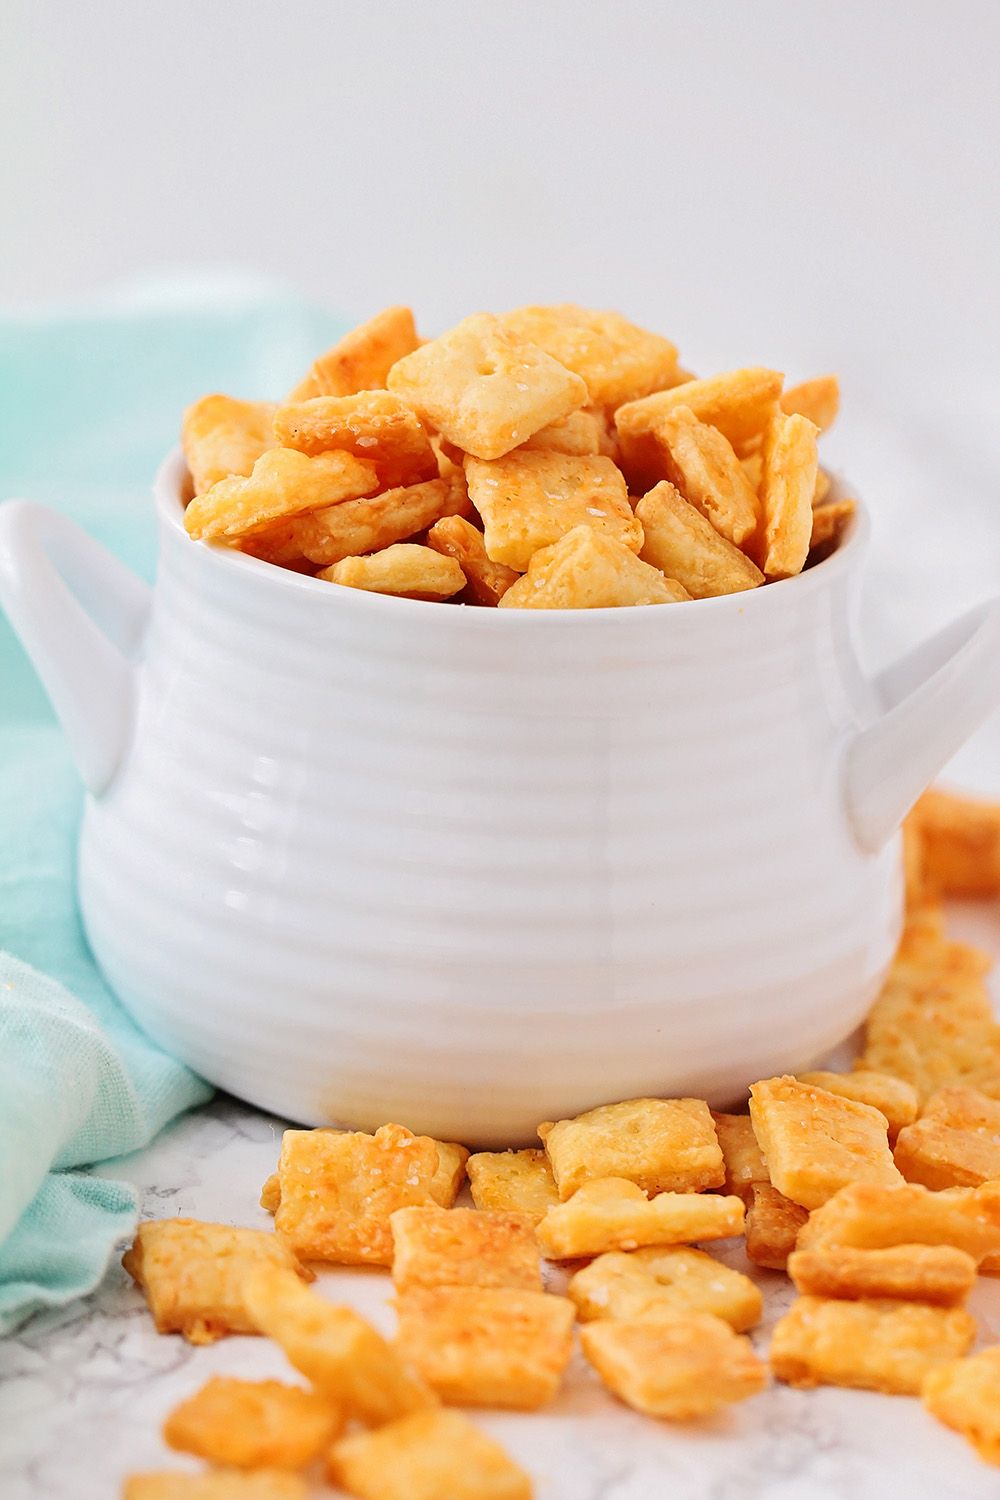 These homemade cheez-it crackers are so deliciously cheesy, and even better than store-bought!